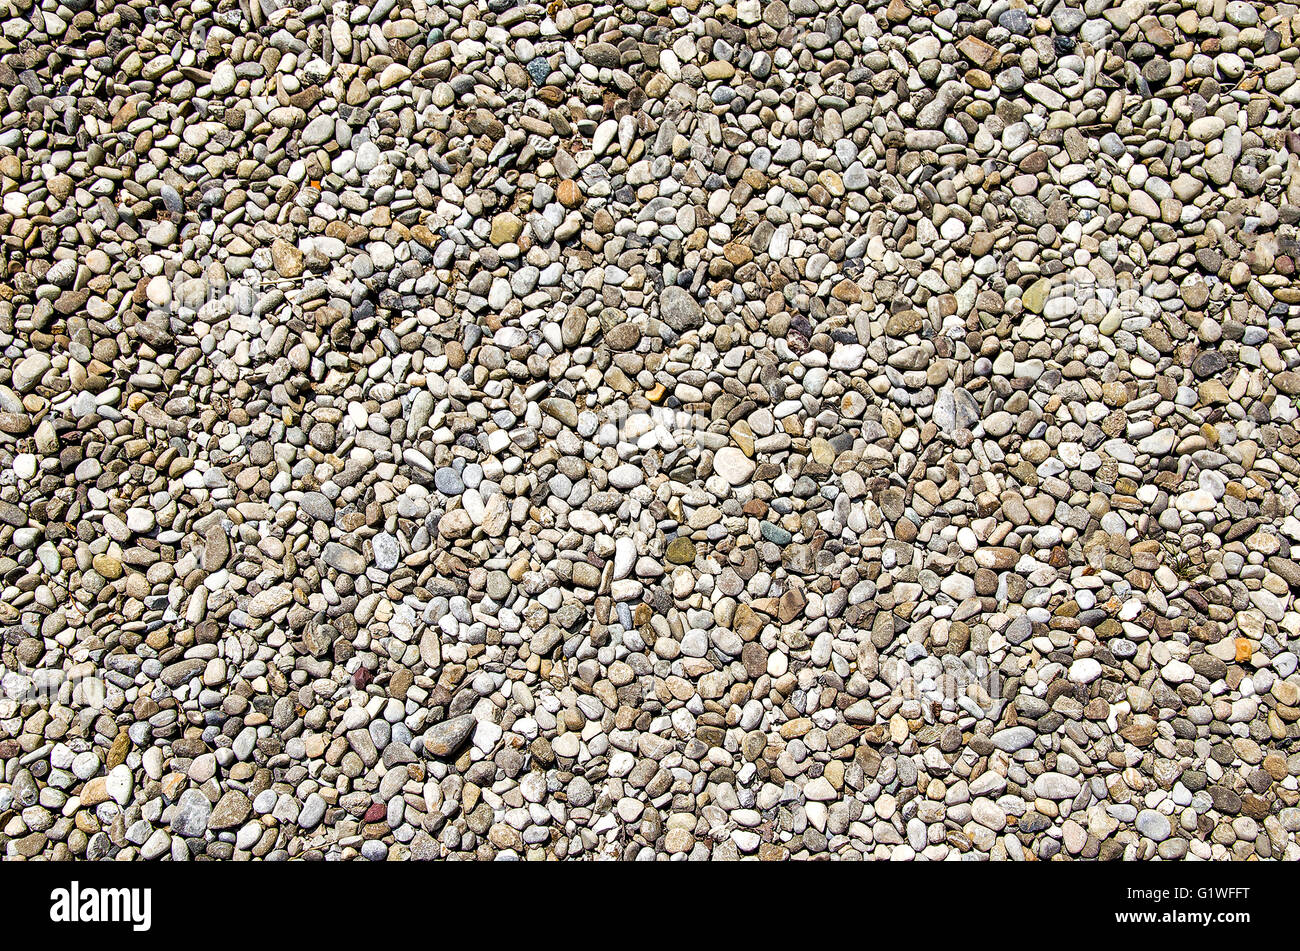 rounded stones texture - Stock Image